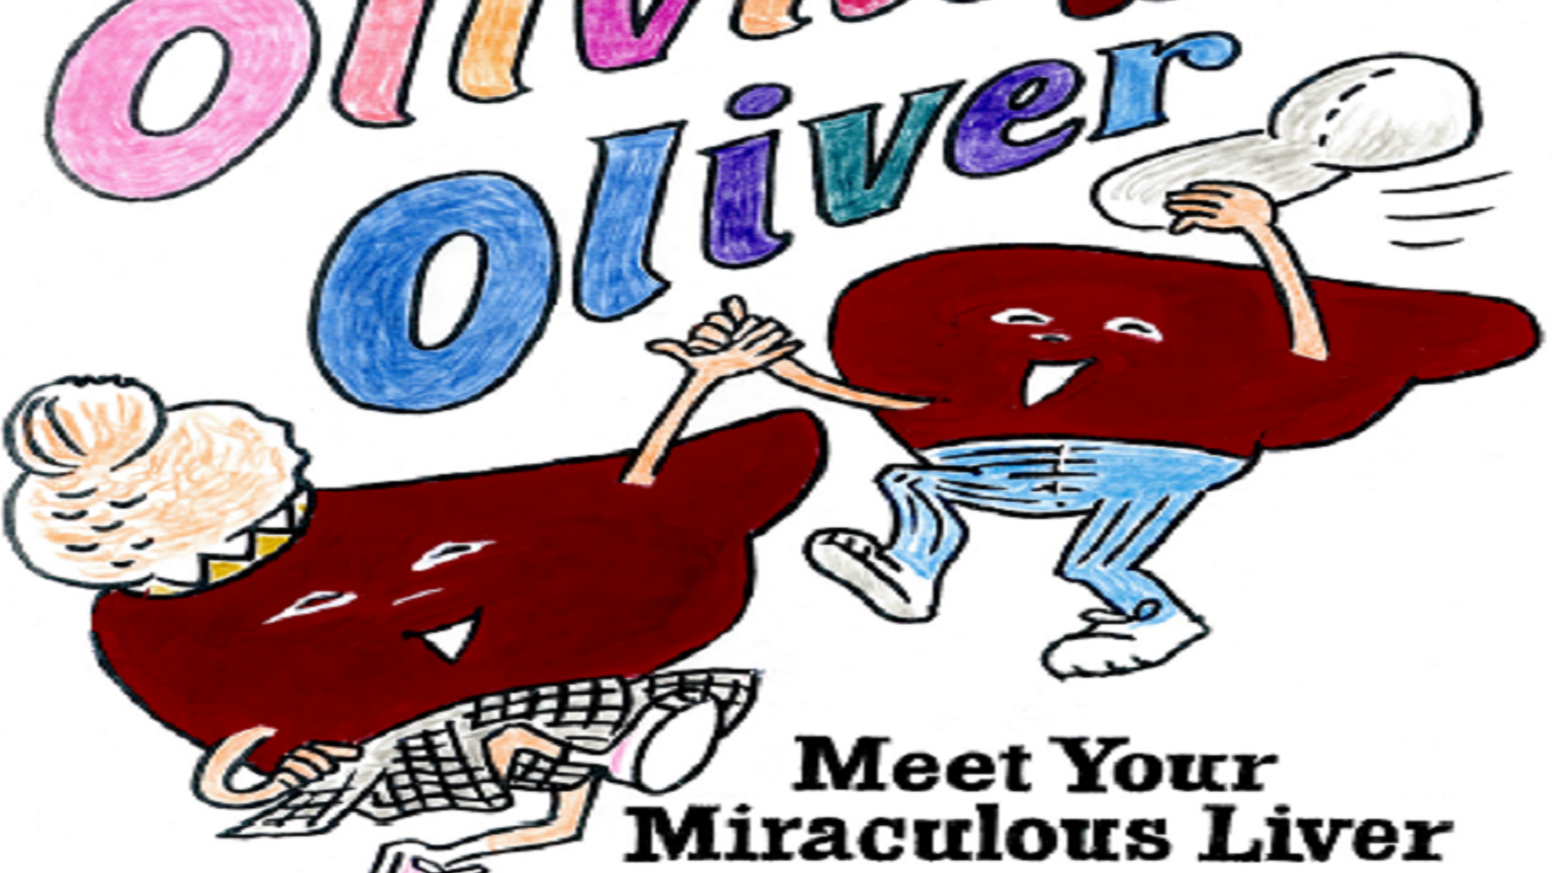 Olivia Oliver Meet Your Miraculous Liver A Coloring Book